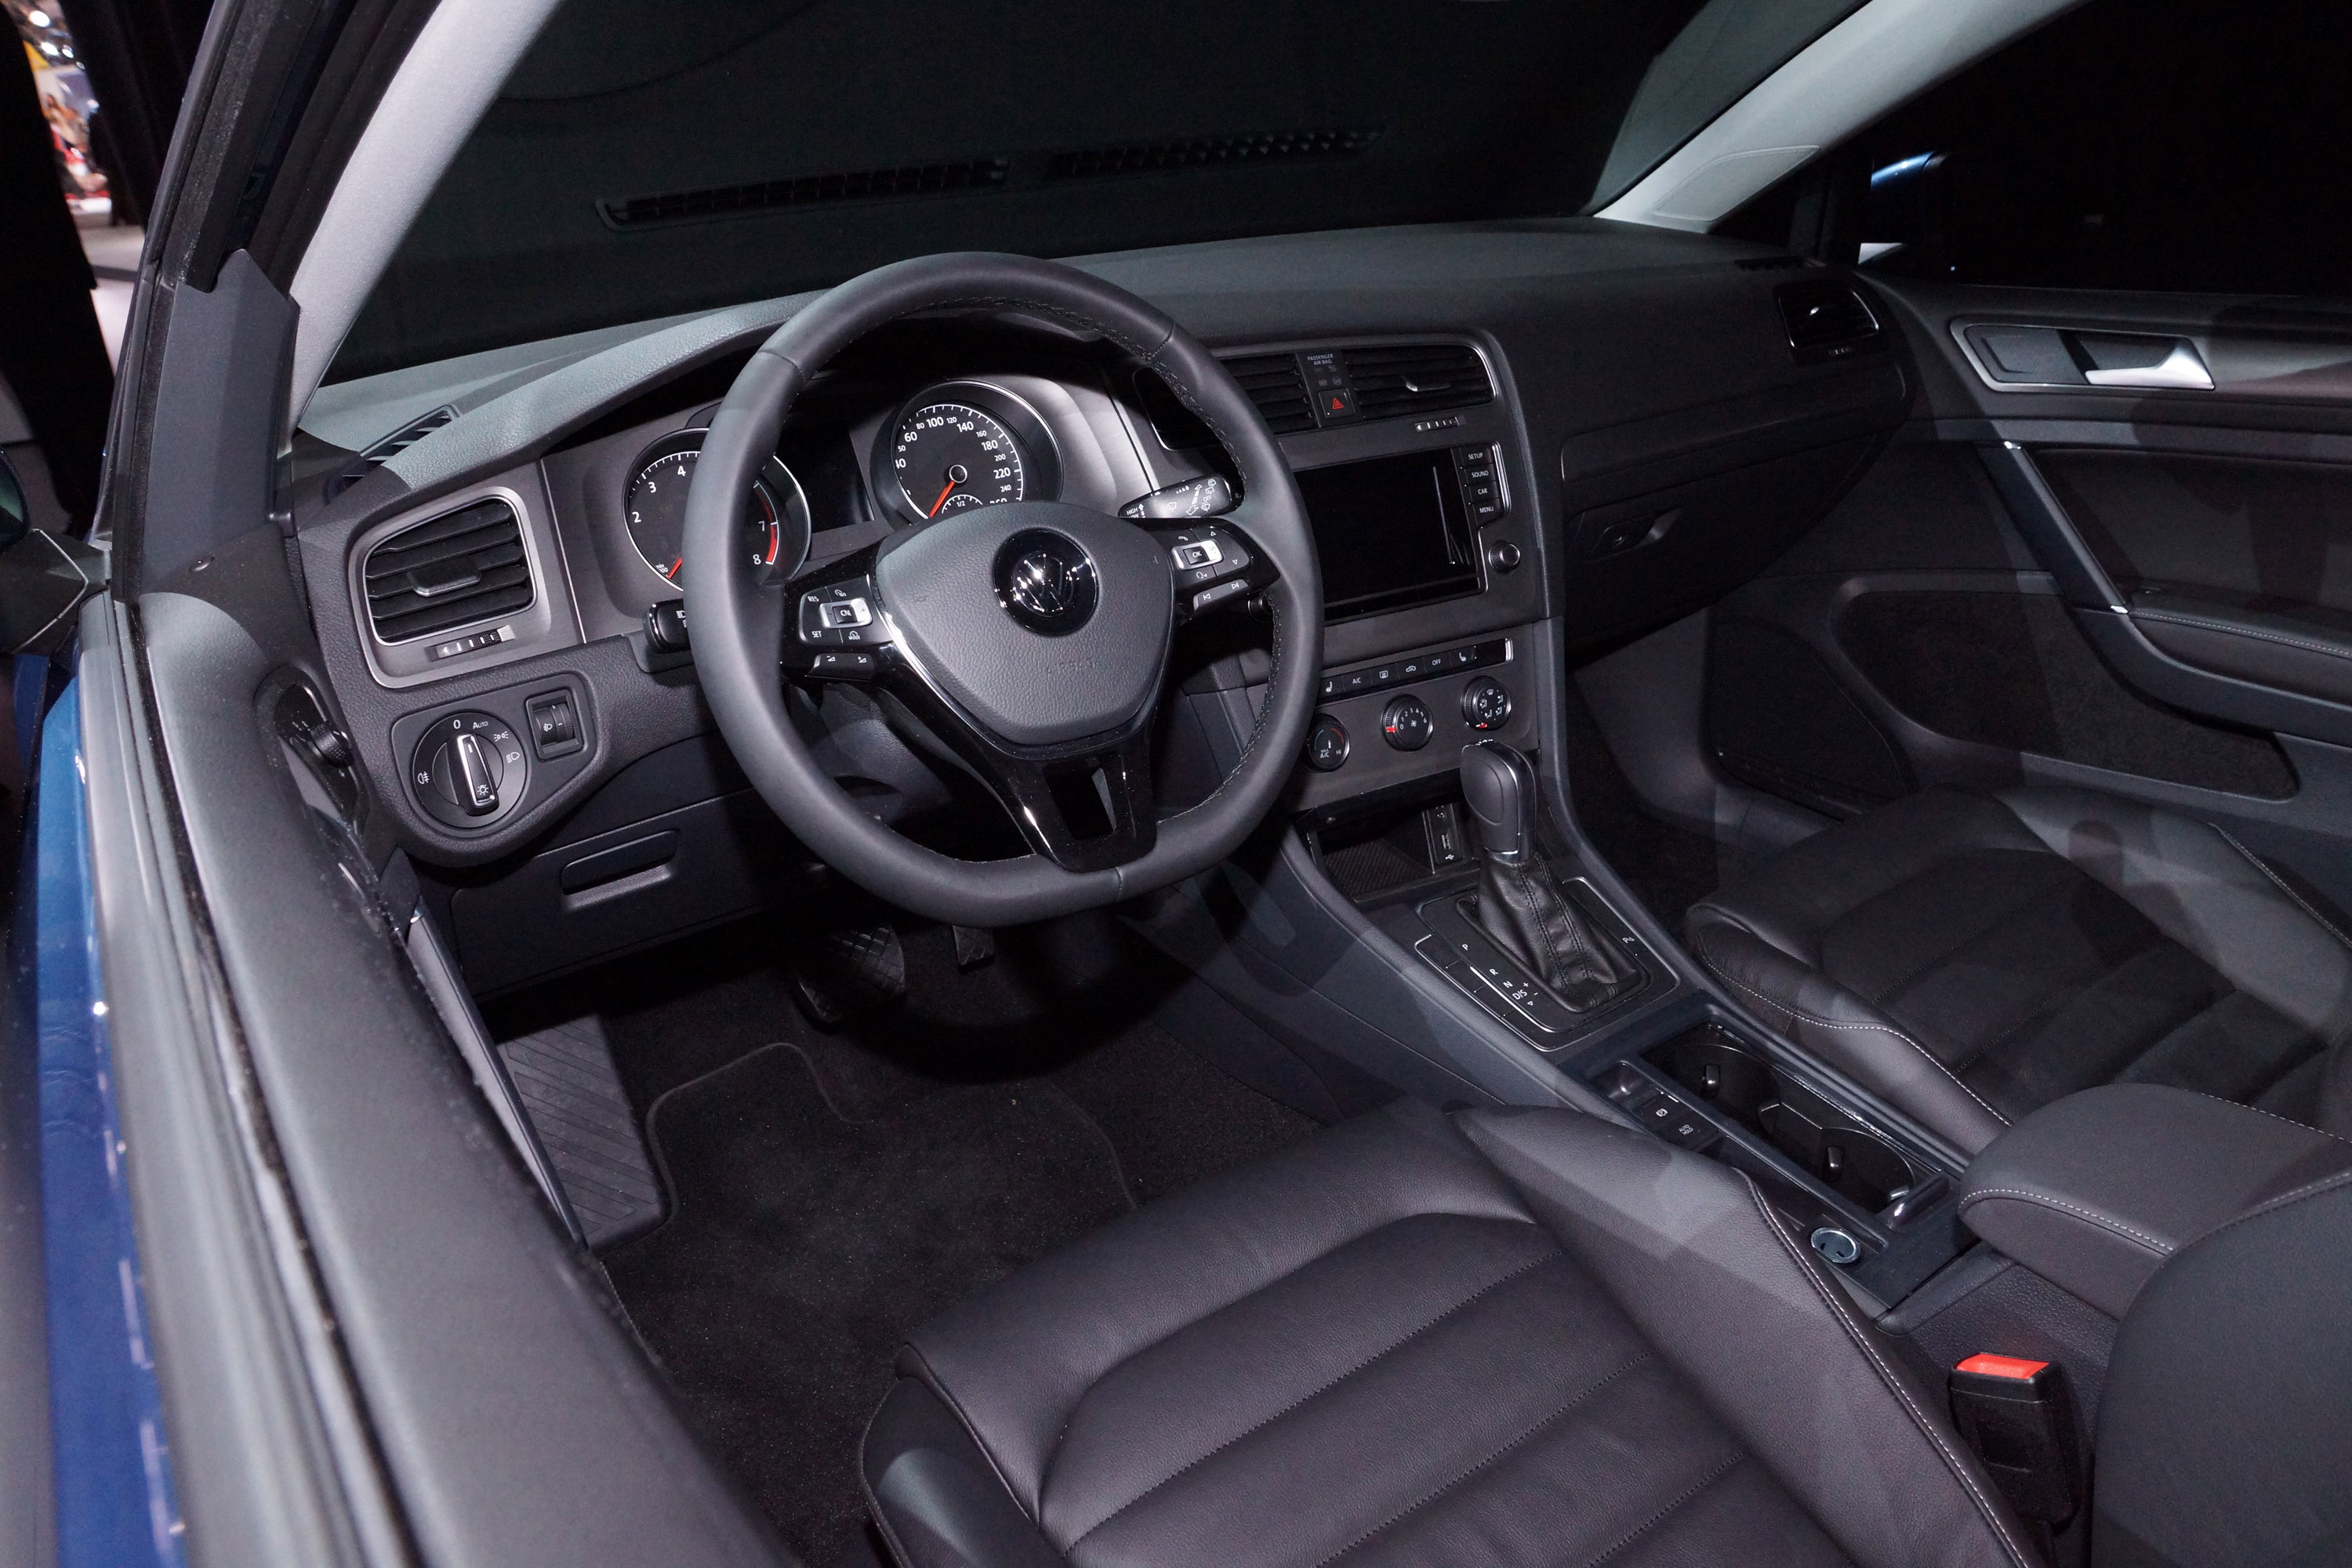 Volkswagen Golf Tdi New York 2013 Picture 83842